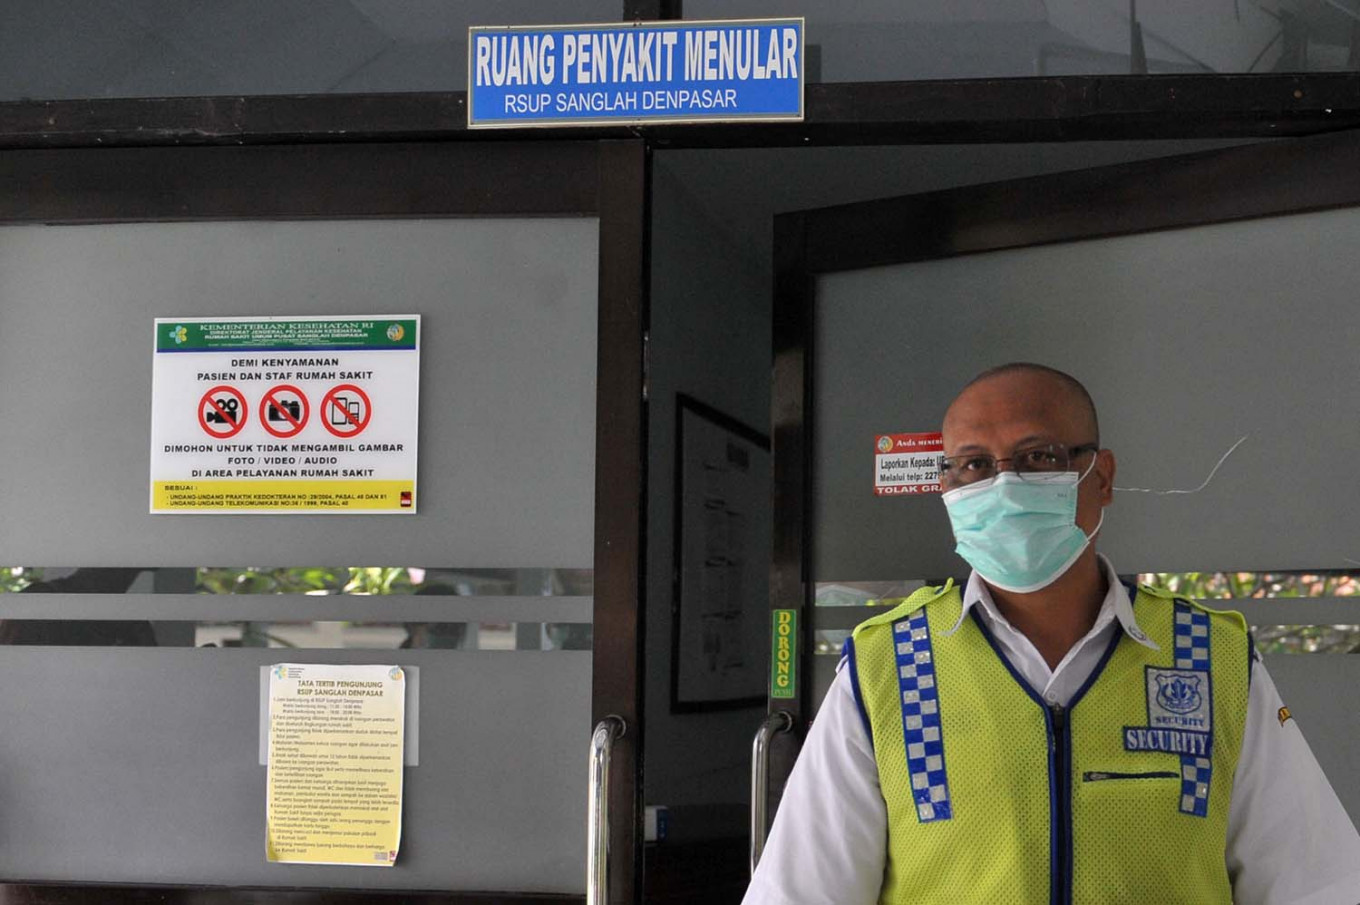 COVID-19 patients in East Java hospital demand to be let out for Idul Fitri